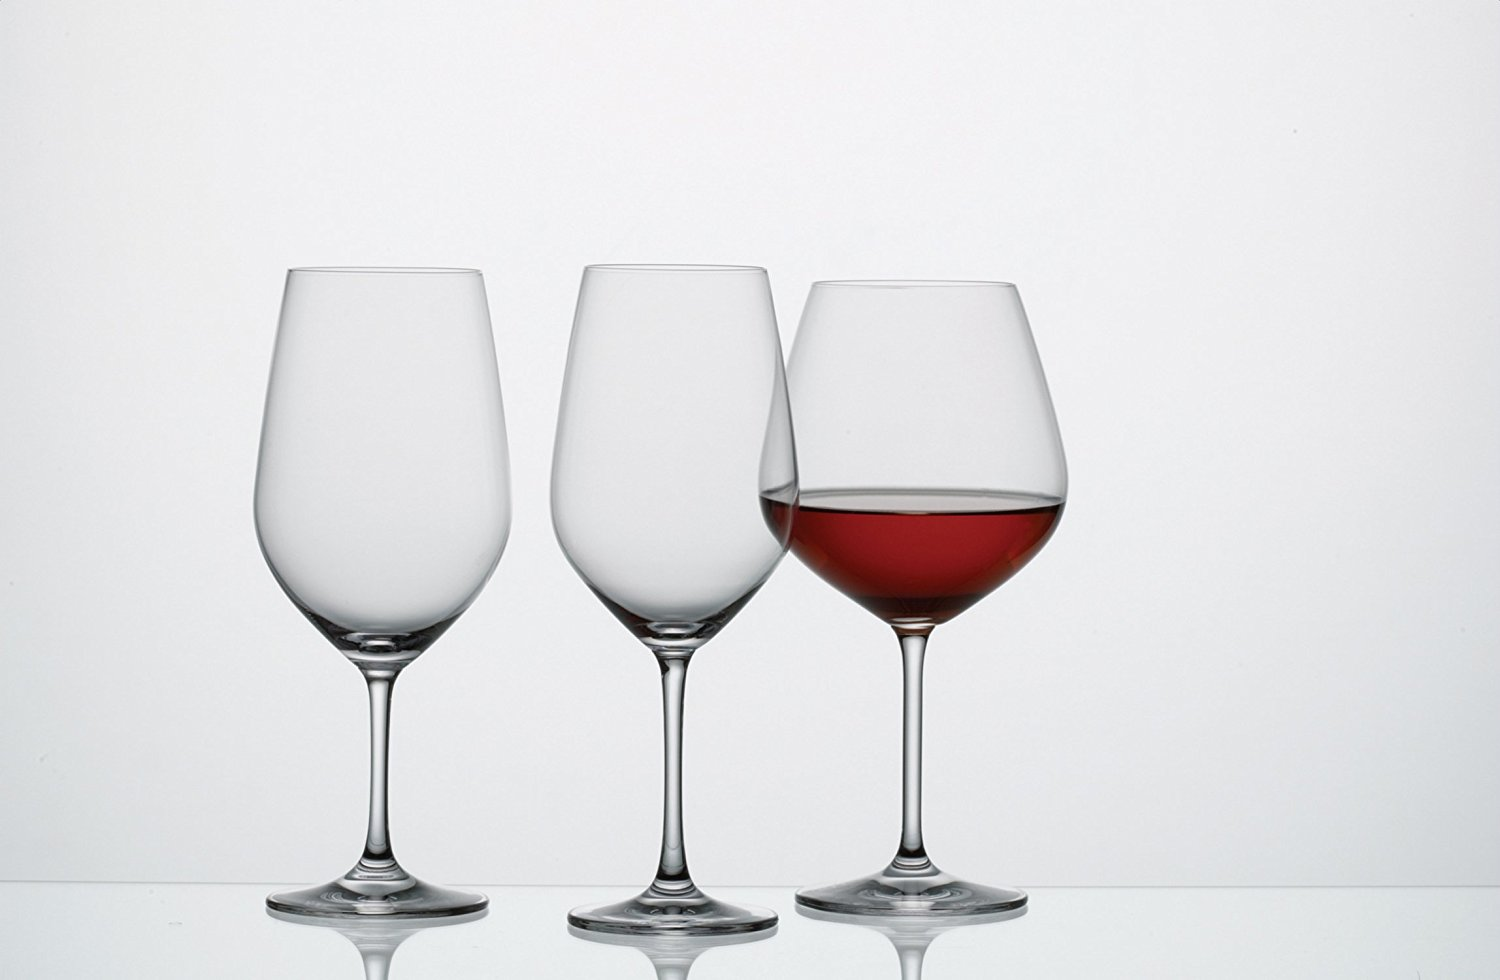 Schott Zwiesel Wine Glasses | Spiegelau Stemless Wine Glasses | Titanium Wine Glasses Unbreakable